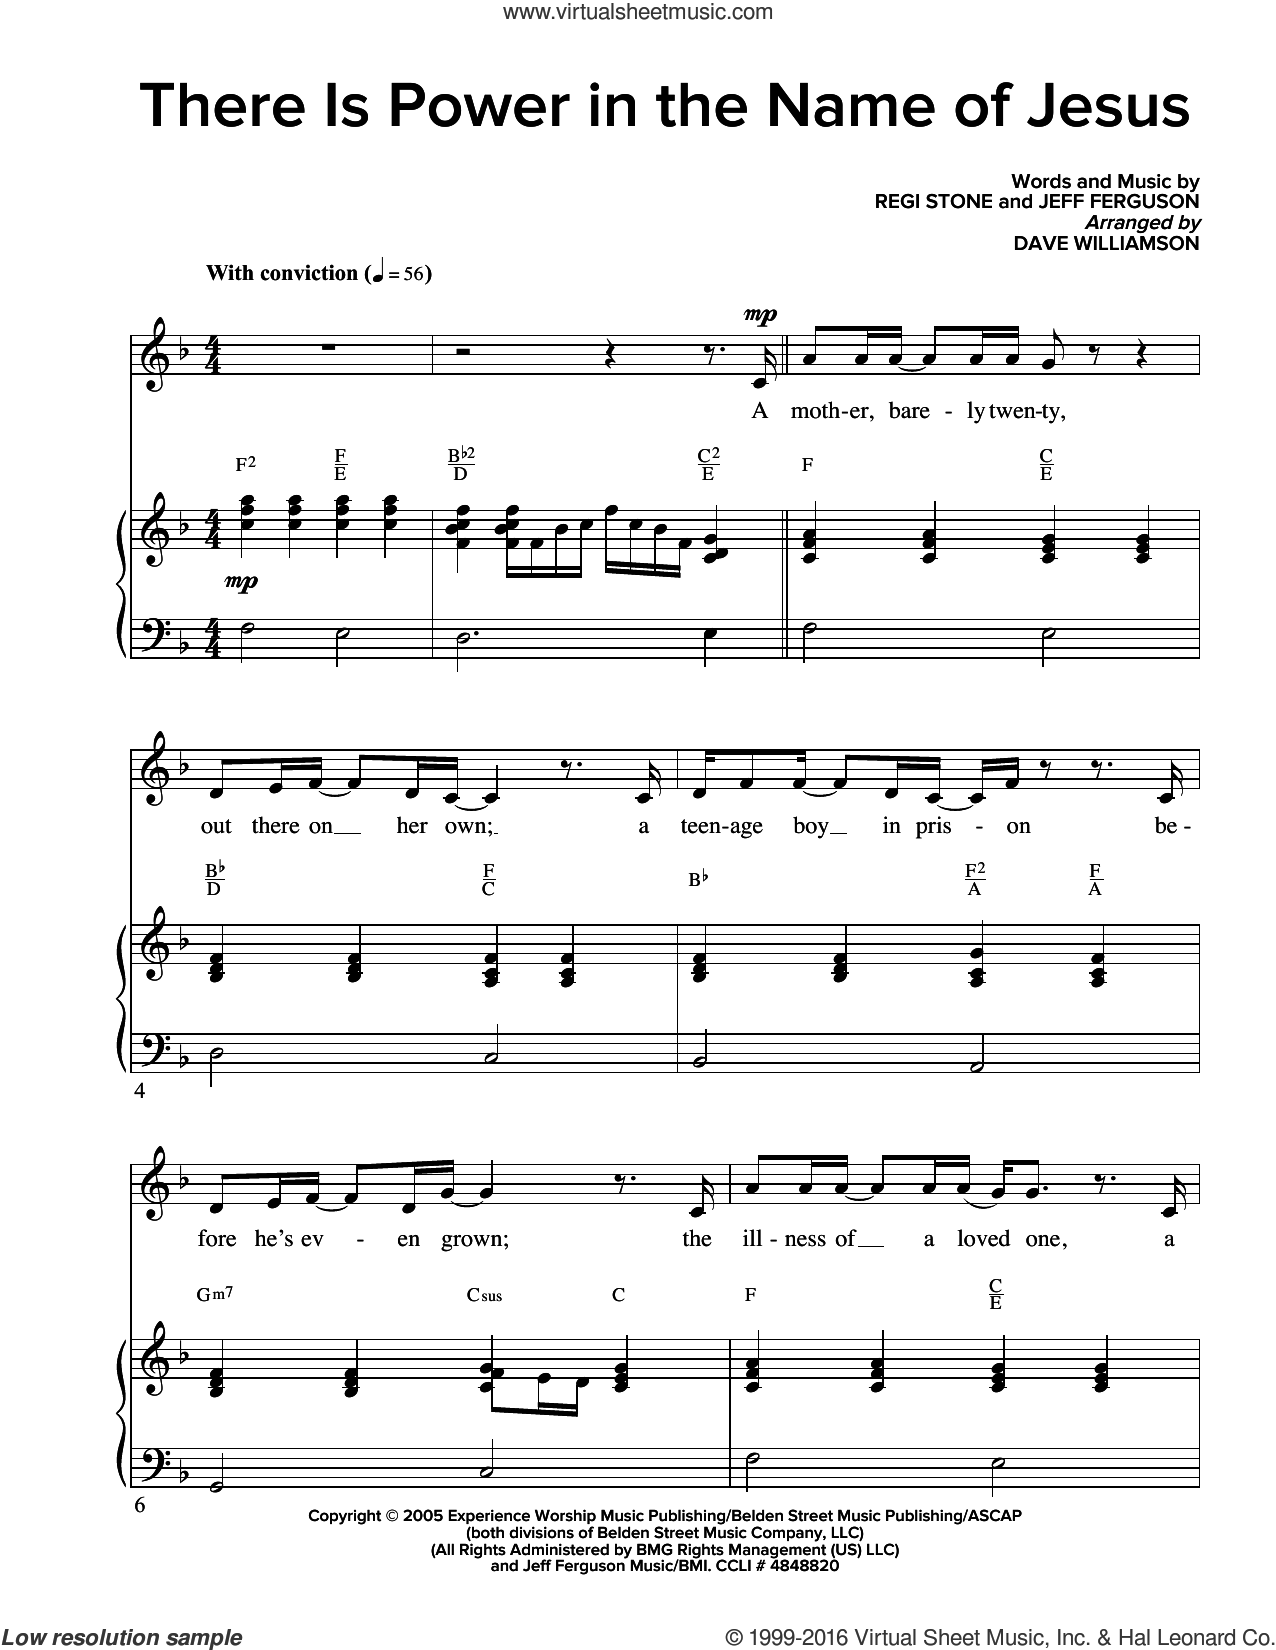 There Is Power In The Name Of Jesus sheet music for voice and piano by Regi Stone and Jeff Ferguson. Score Image Preview.